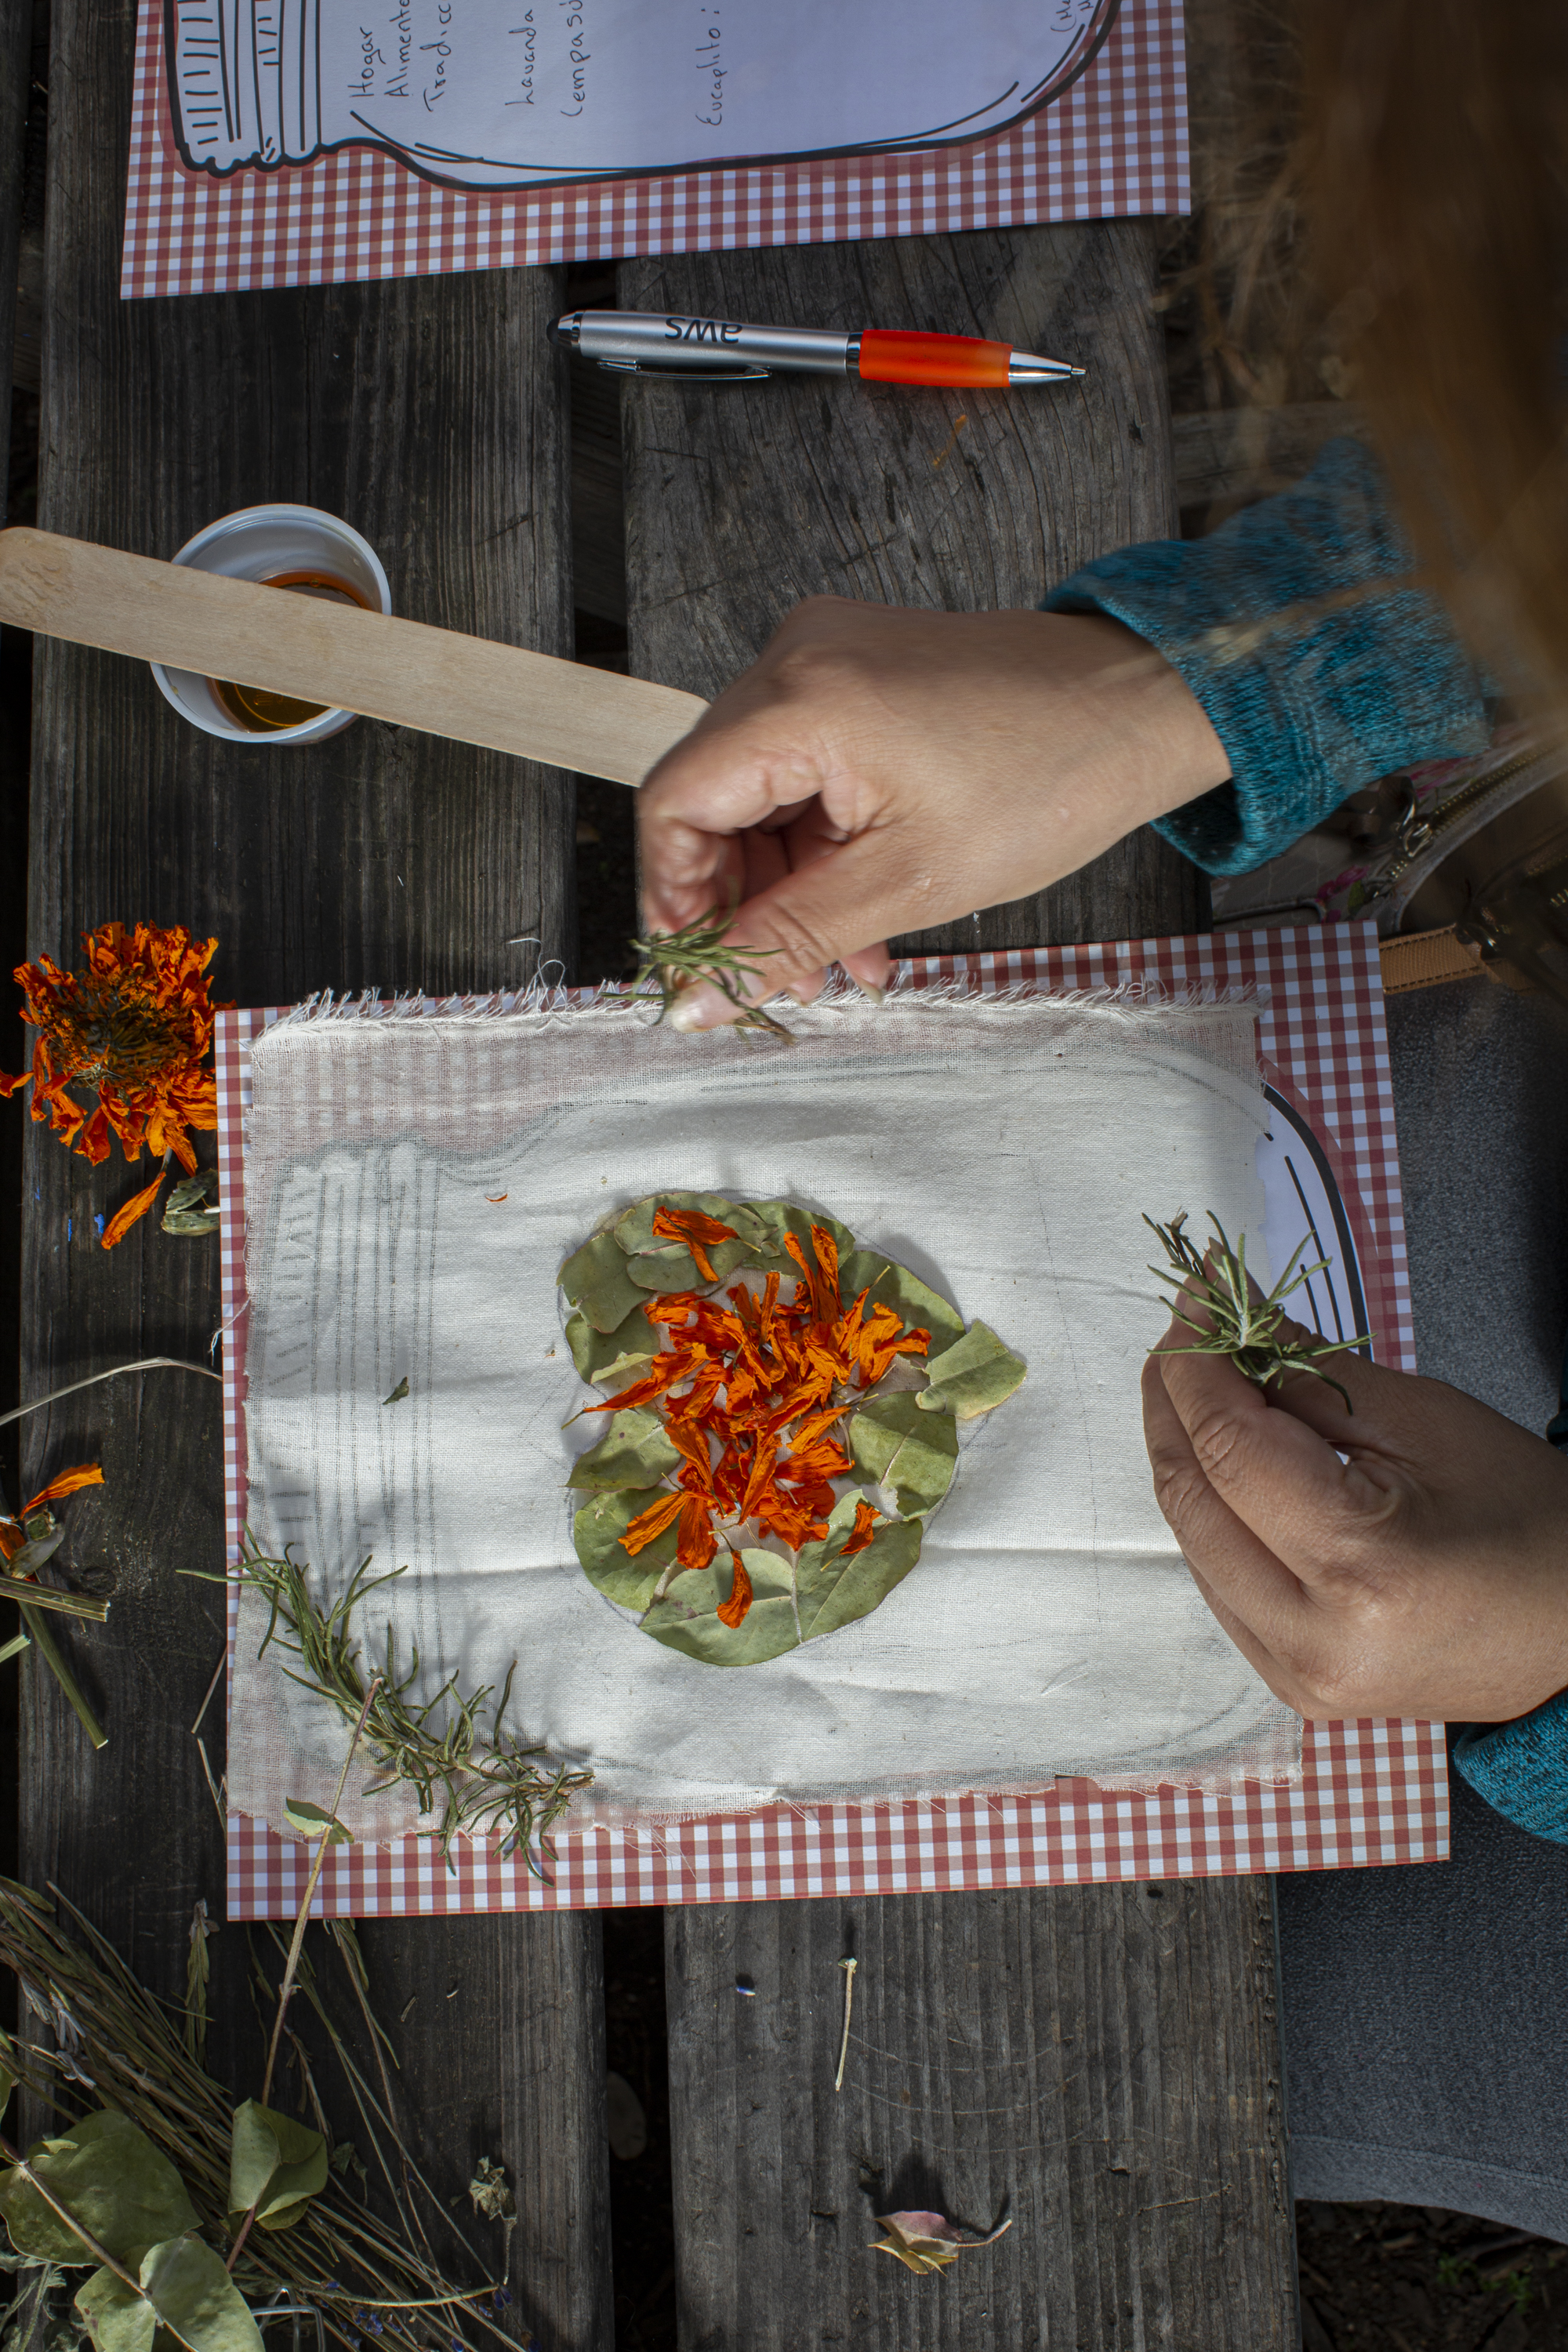 Drawing a memory with honey and dry herbs. Brewing Memories, October 24, 2020. Photo by Cinthya Santos-Briones.